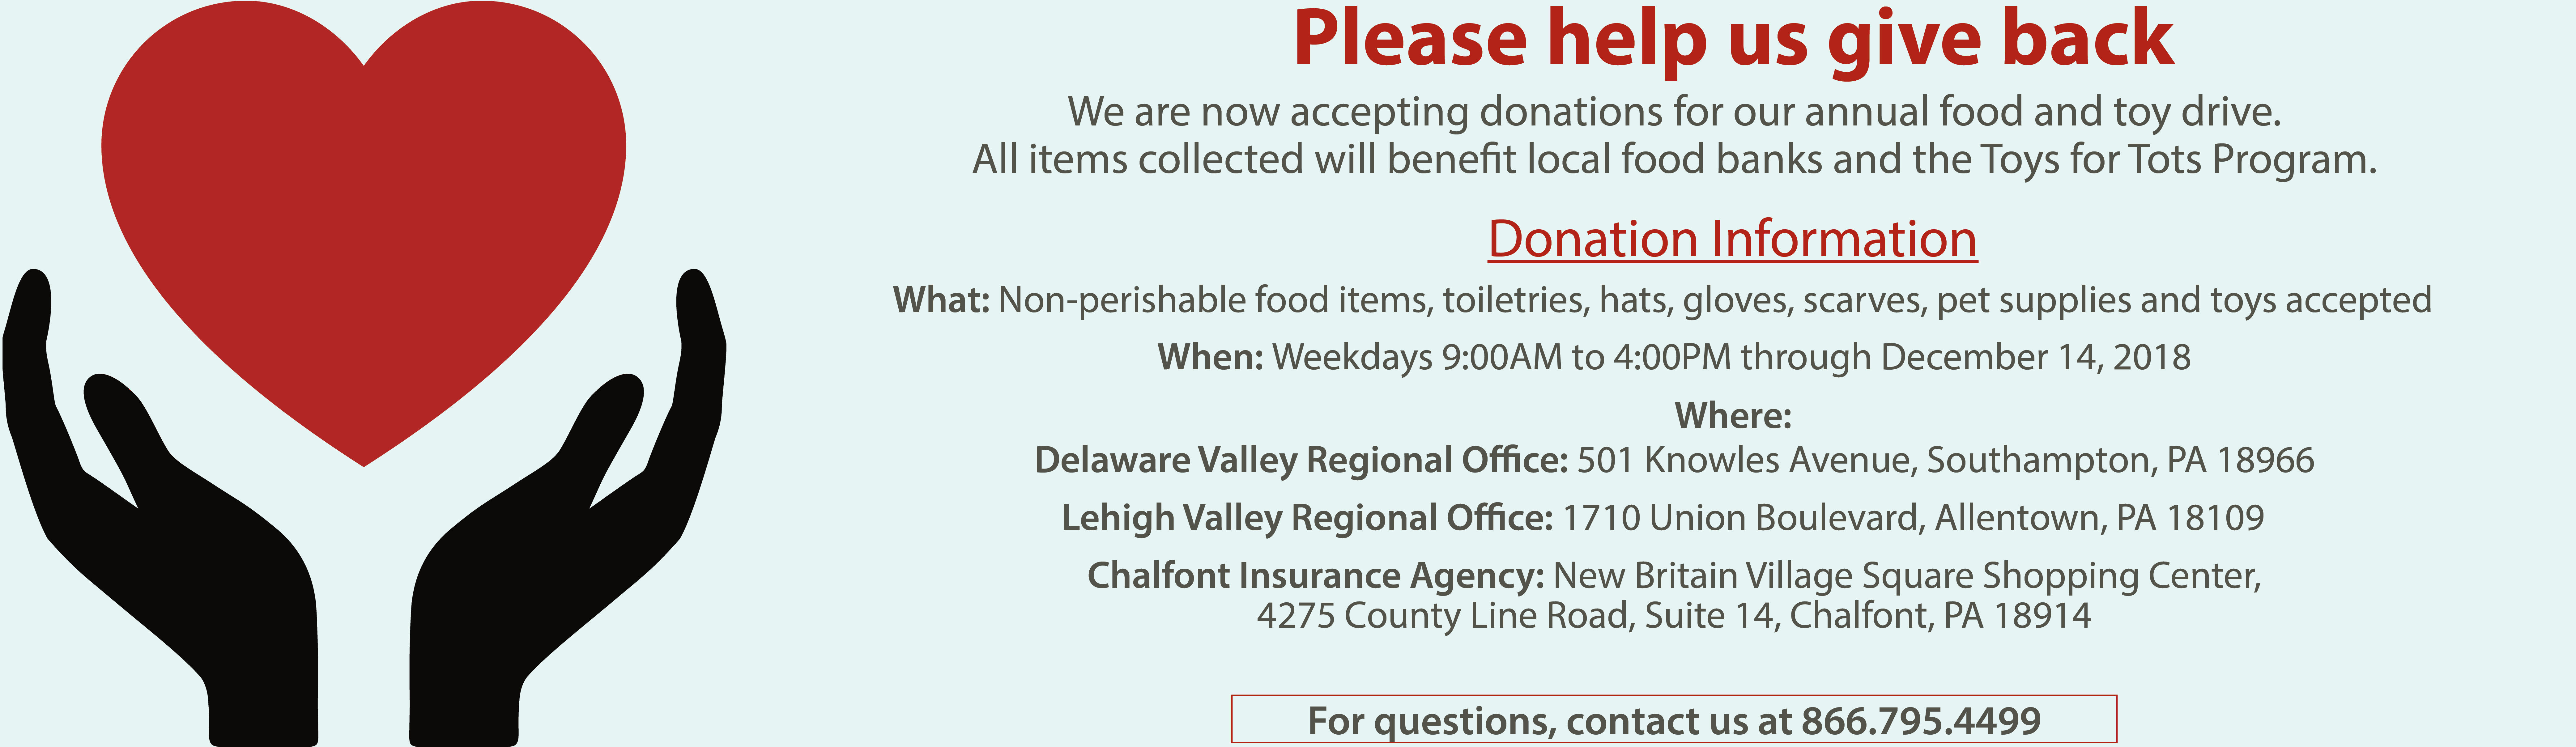 Image for Quaint Oak Bank Food and Toy Drive